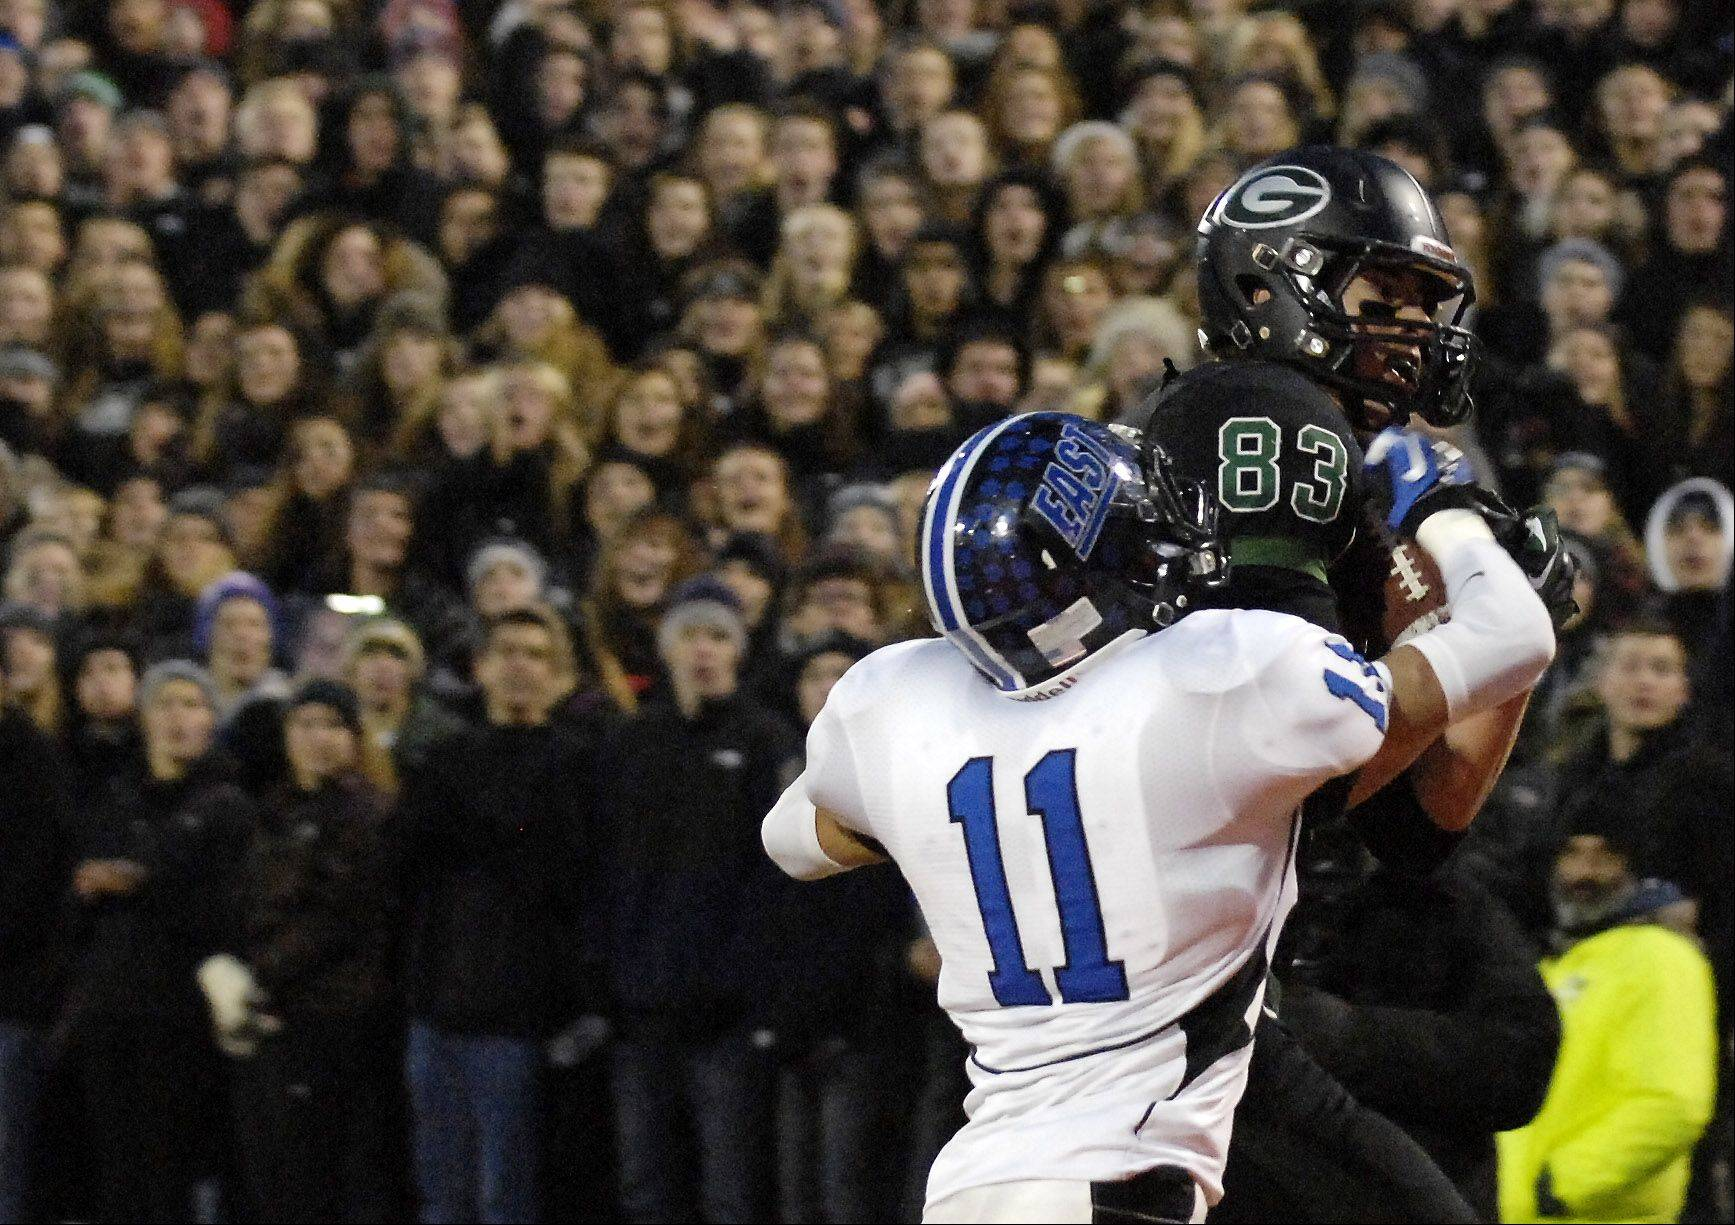 Glenbard West's Nathan Marcusm 83, hauls in a first-half touchdown catch in front of Lincoln-Way East's Moe Almasri during Saturday's Class 7A state title game at Memorial Stadium in Champaign.